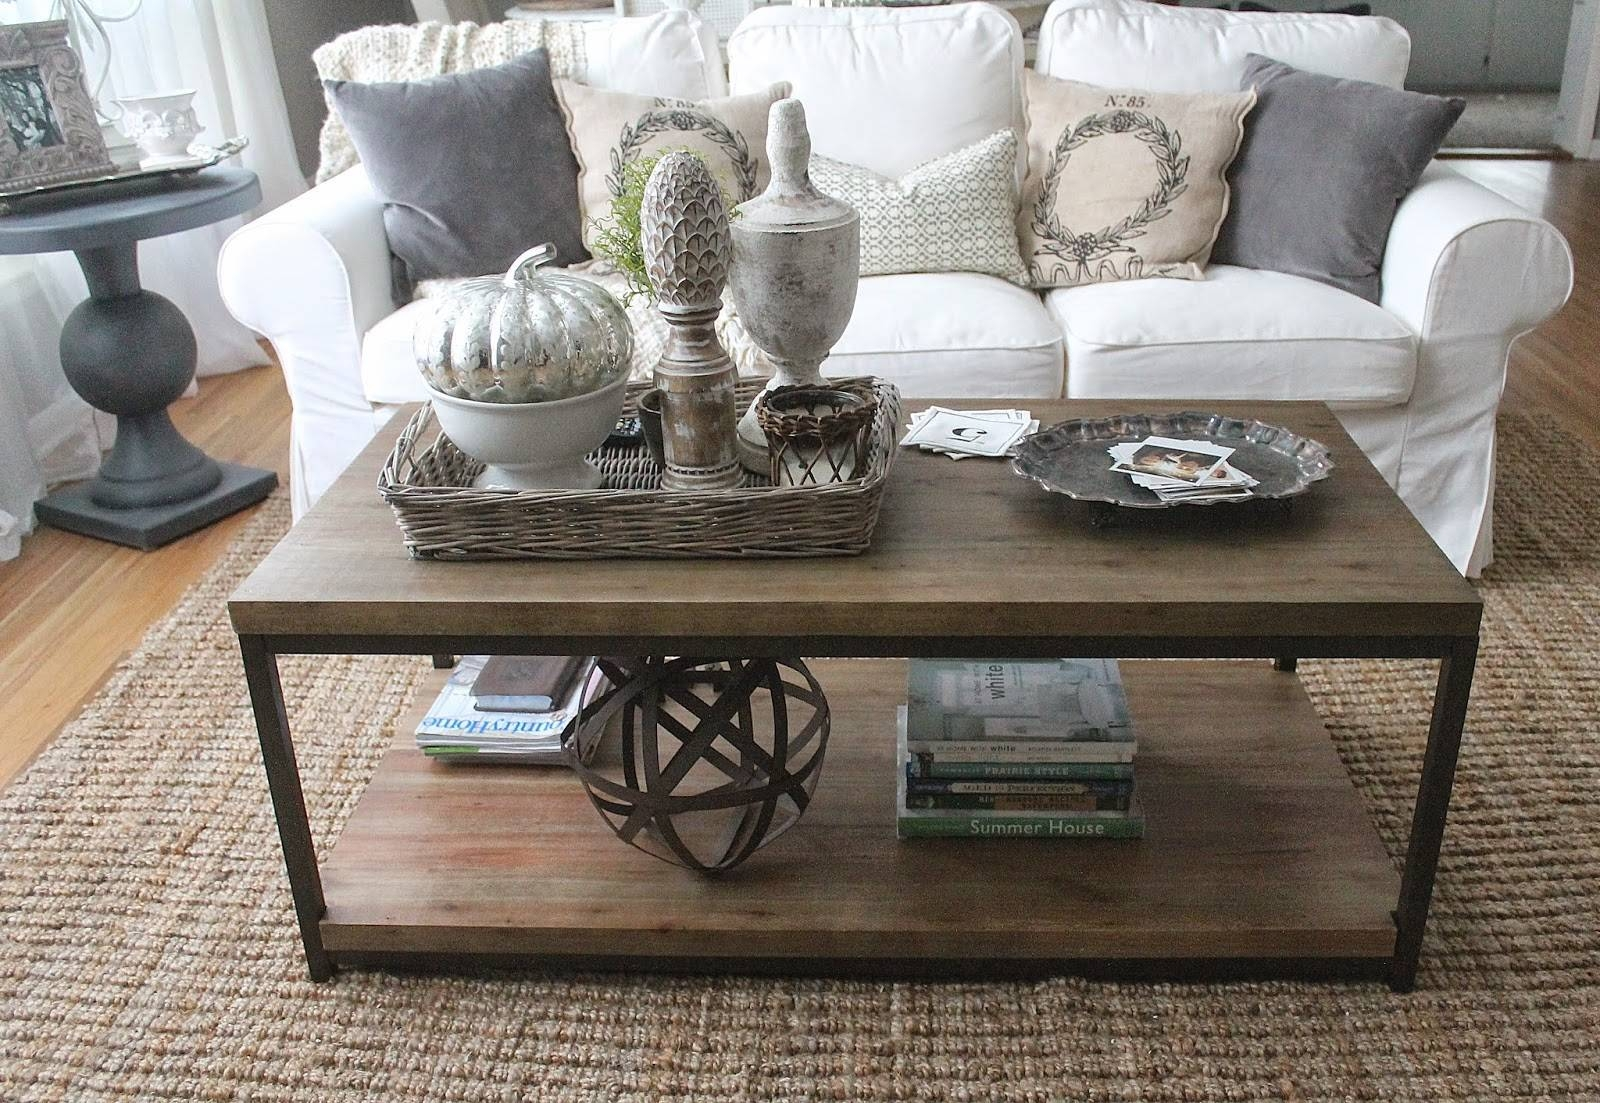 Coffee Table Styling | Little Miss Notting Hill inside Round Coffee Table Trays (Image 6 of 30)